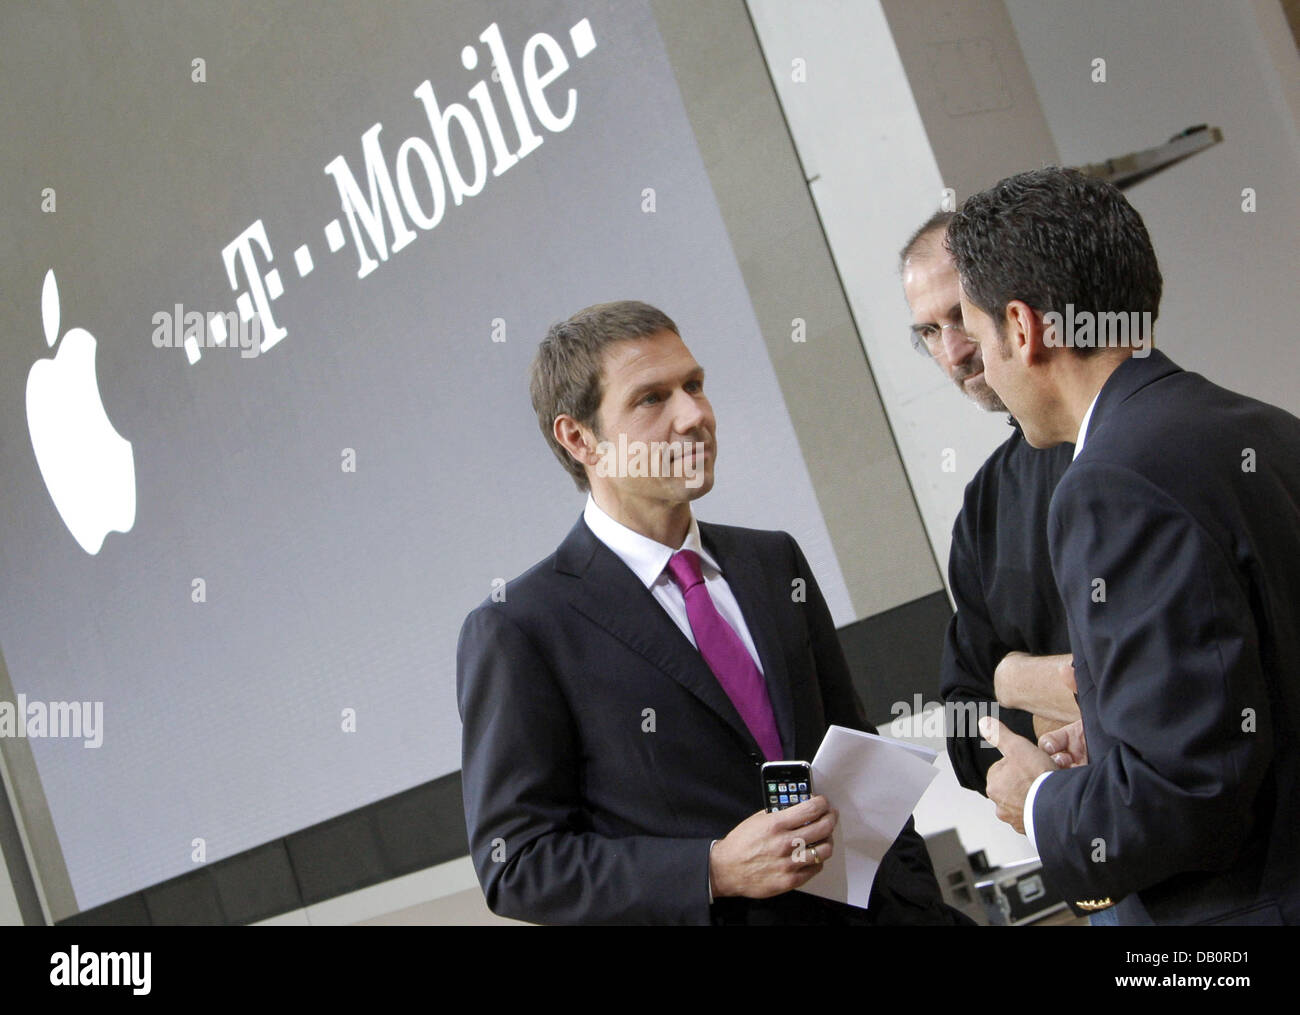 The CEO of Telekom Rene Obermann (L), Apple CEO Steve Jobs (C) and the CEO of T-Mobile International Hamid Akhavan - Stock Image